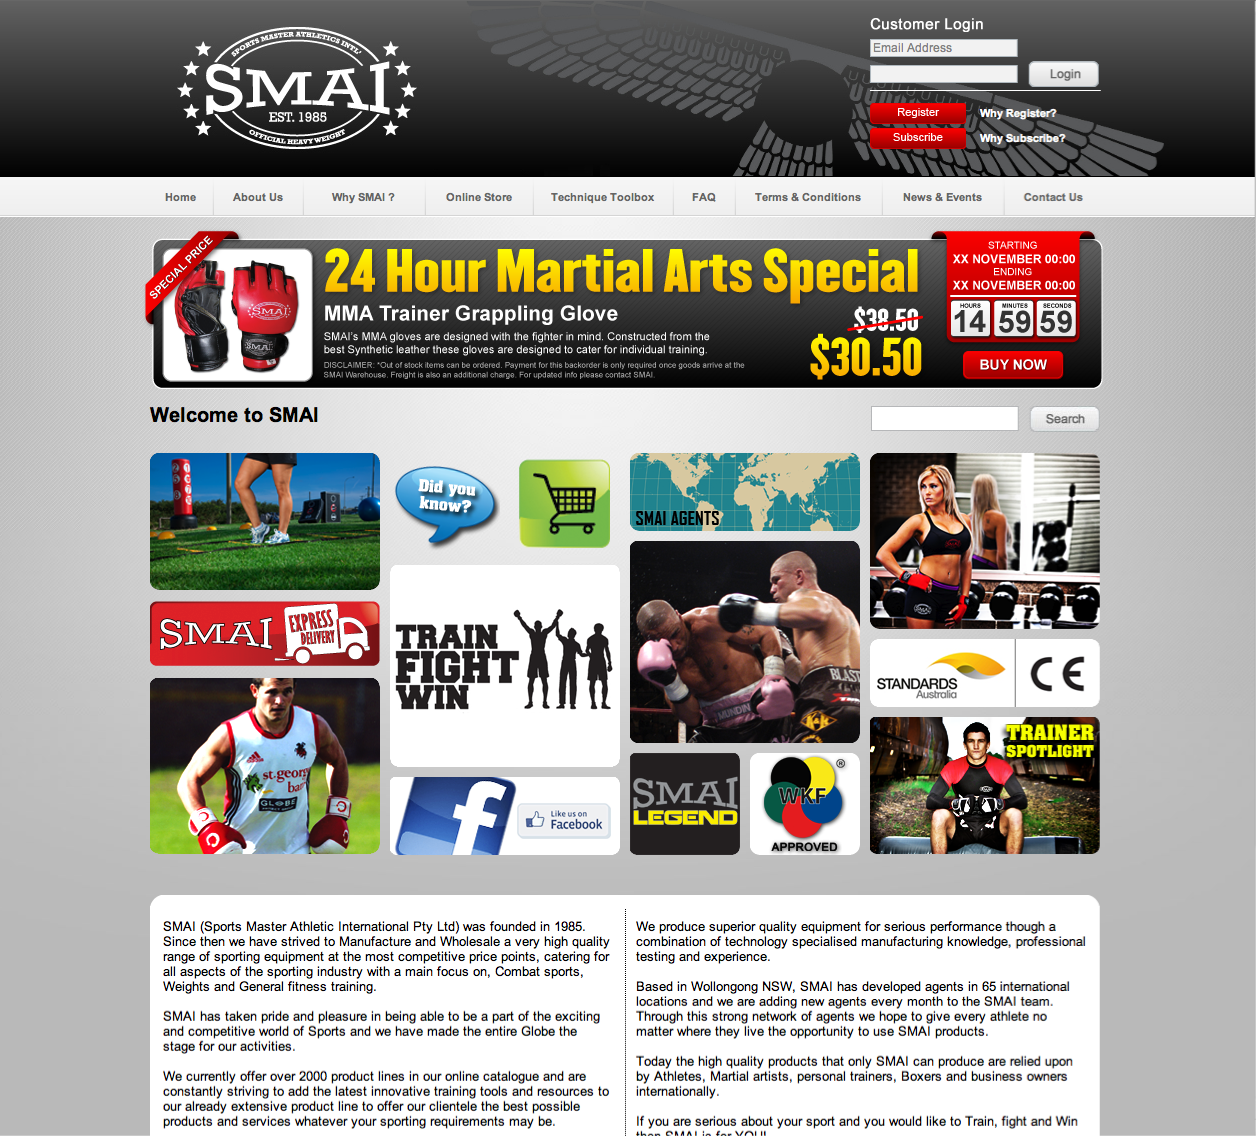 banner ad for Sports Masters Athletics International